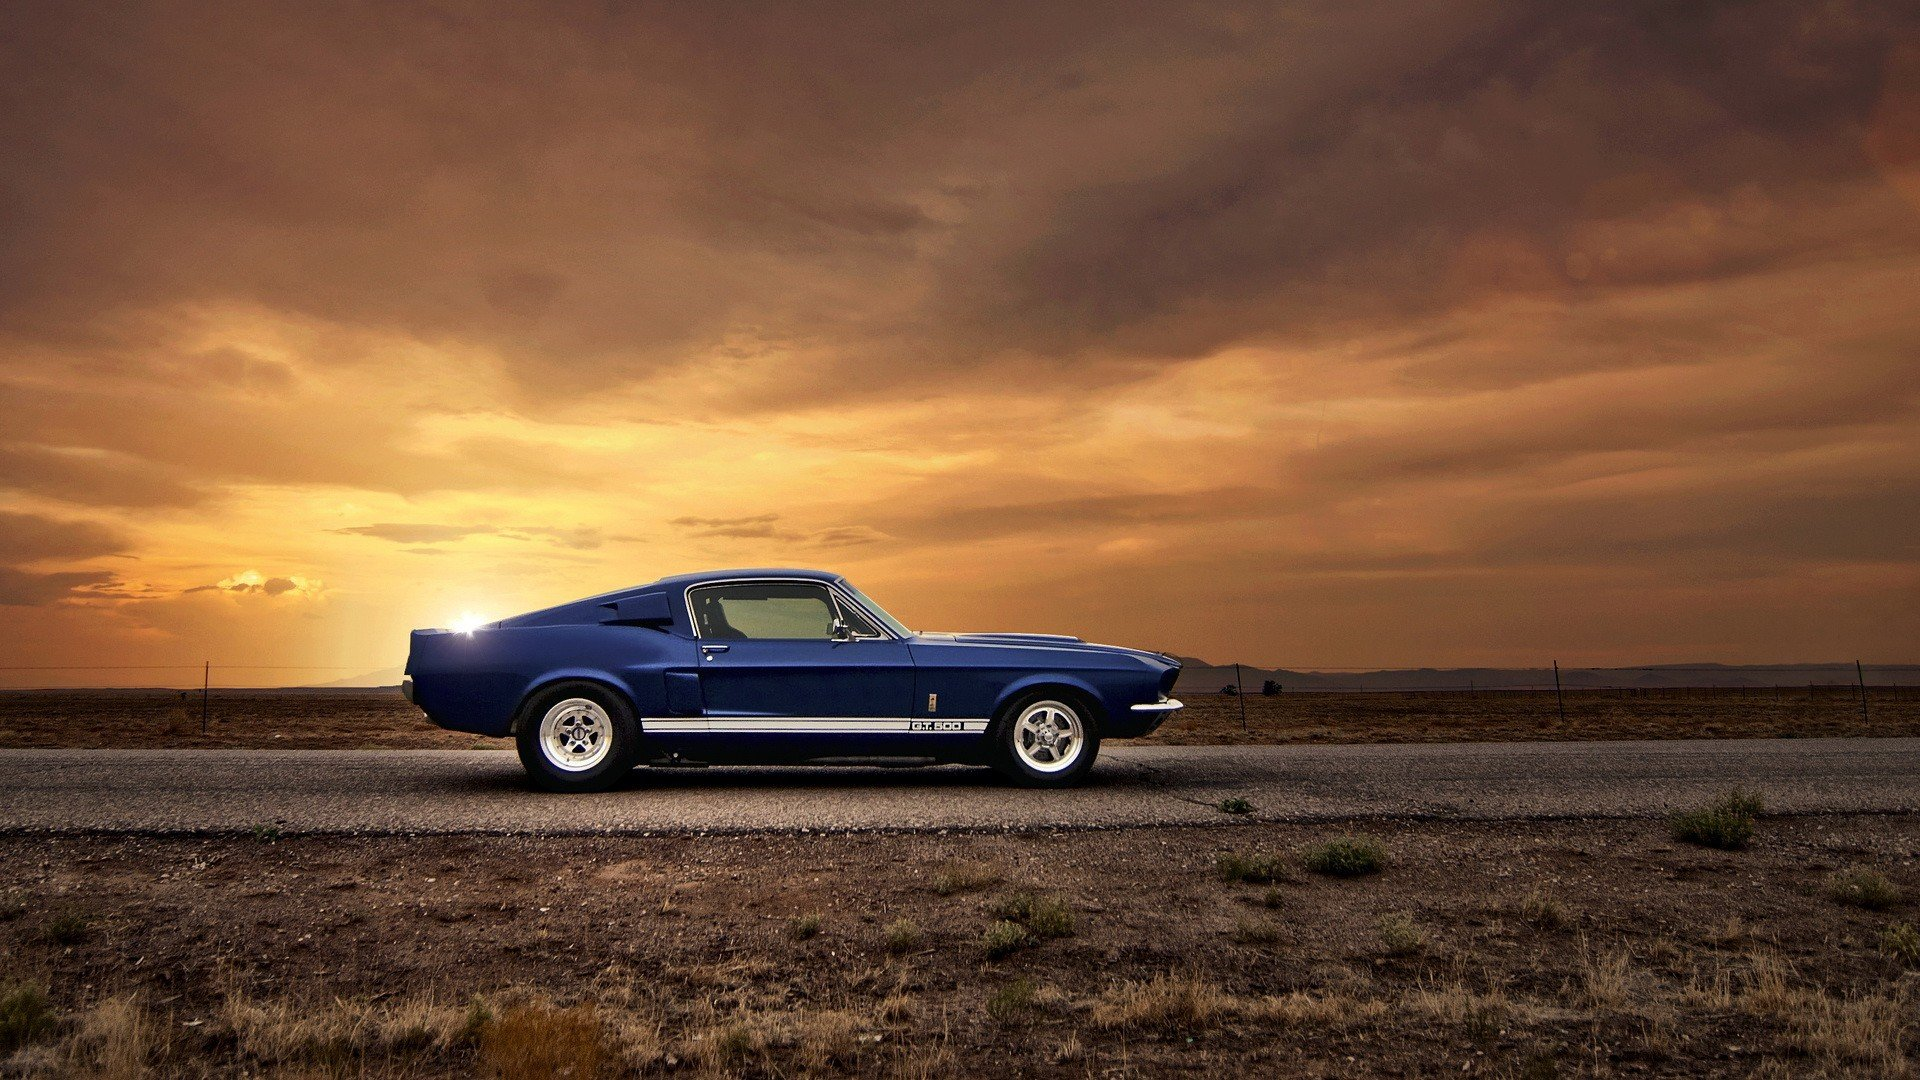 Ford mustang shelby gt500 wallpaper 15297